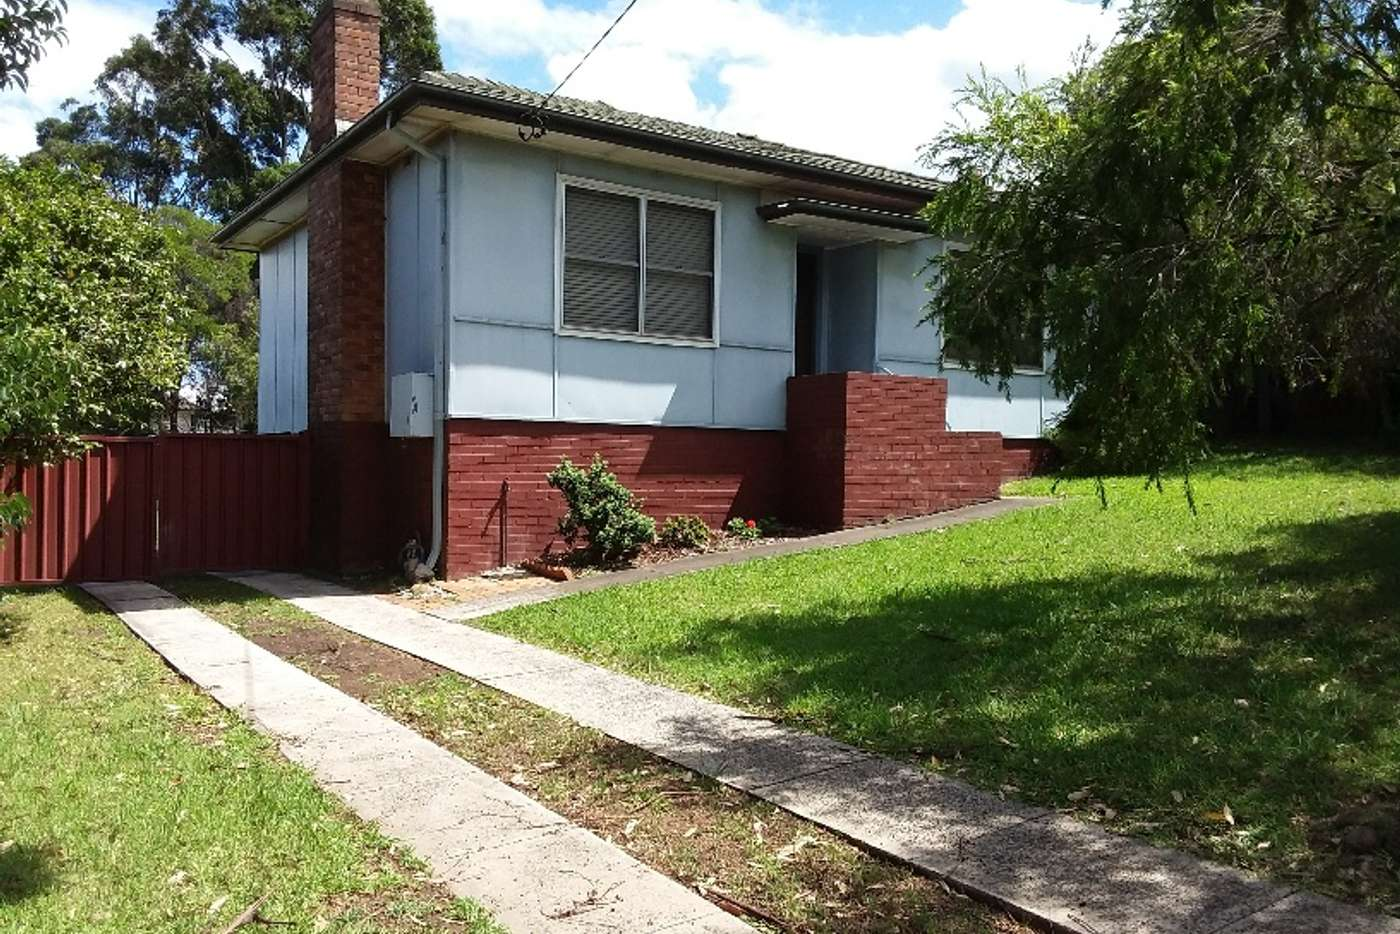 Main view of Homely house listing, 22 Hill Street, Mount Saint Thomas NSW 2500